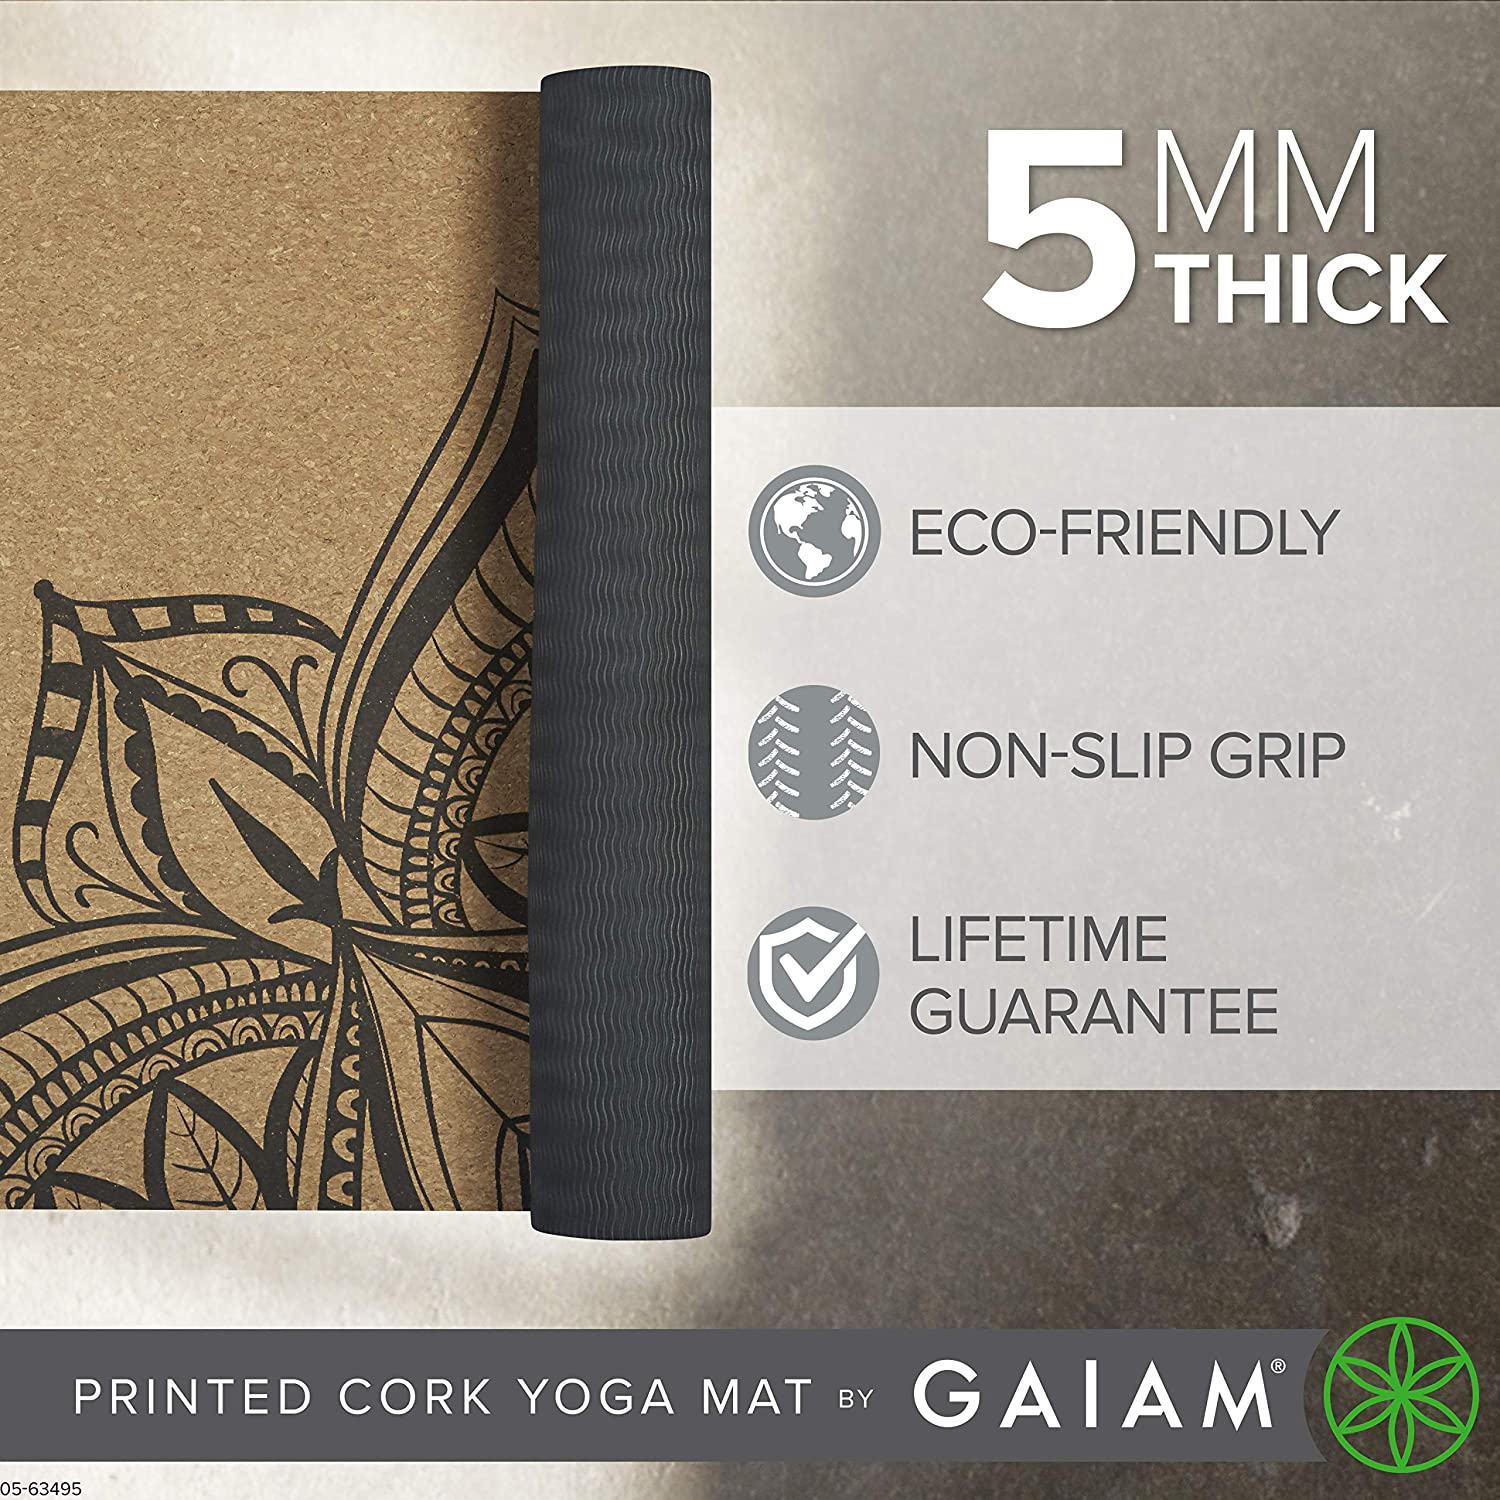 Great for Hot Yoga Natural Sustainable Cork Resists Germs and Odor 68-Inch x 24-Inch x 5mm Thick Non-Toxic TPE Rubber Backing Pilates Gaiam Cork Yoga Mat